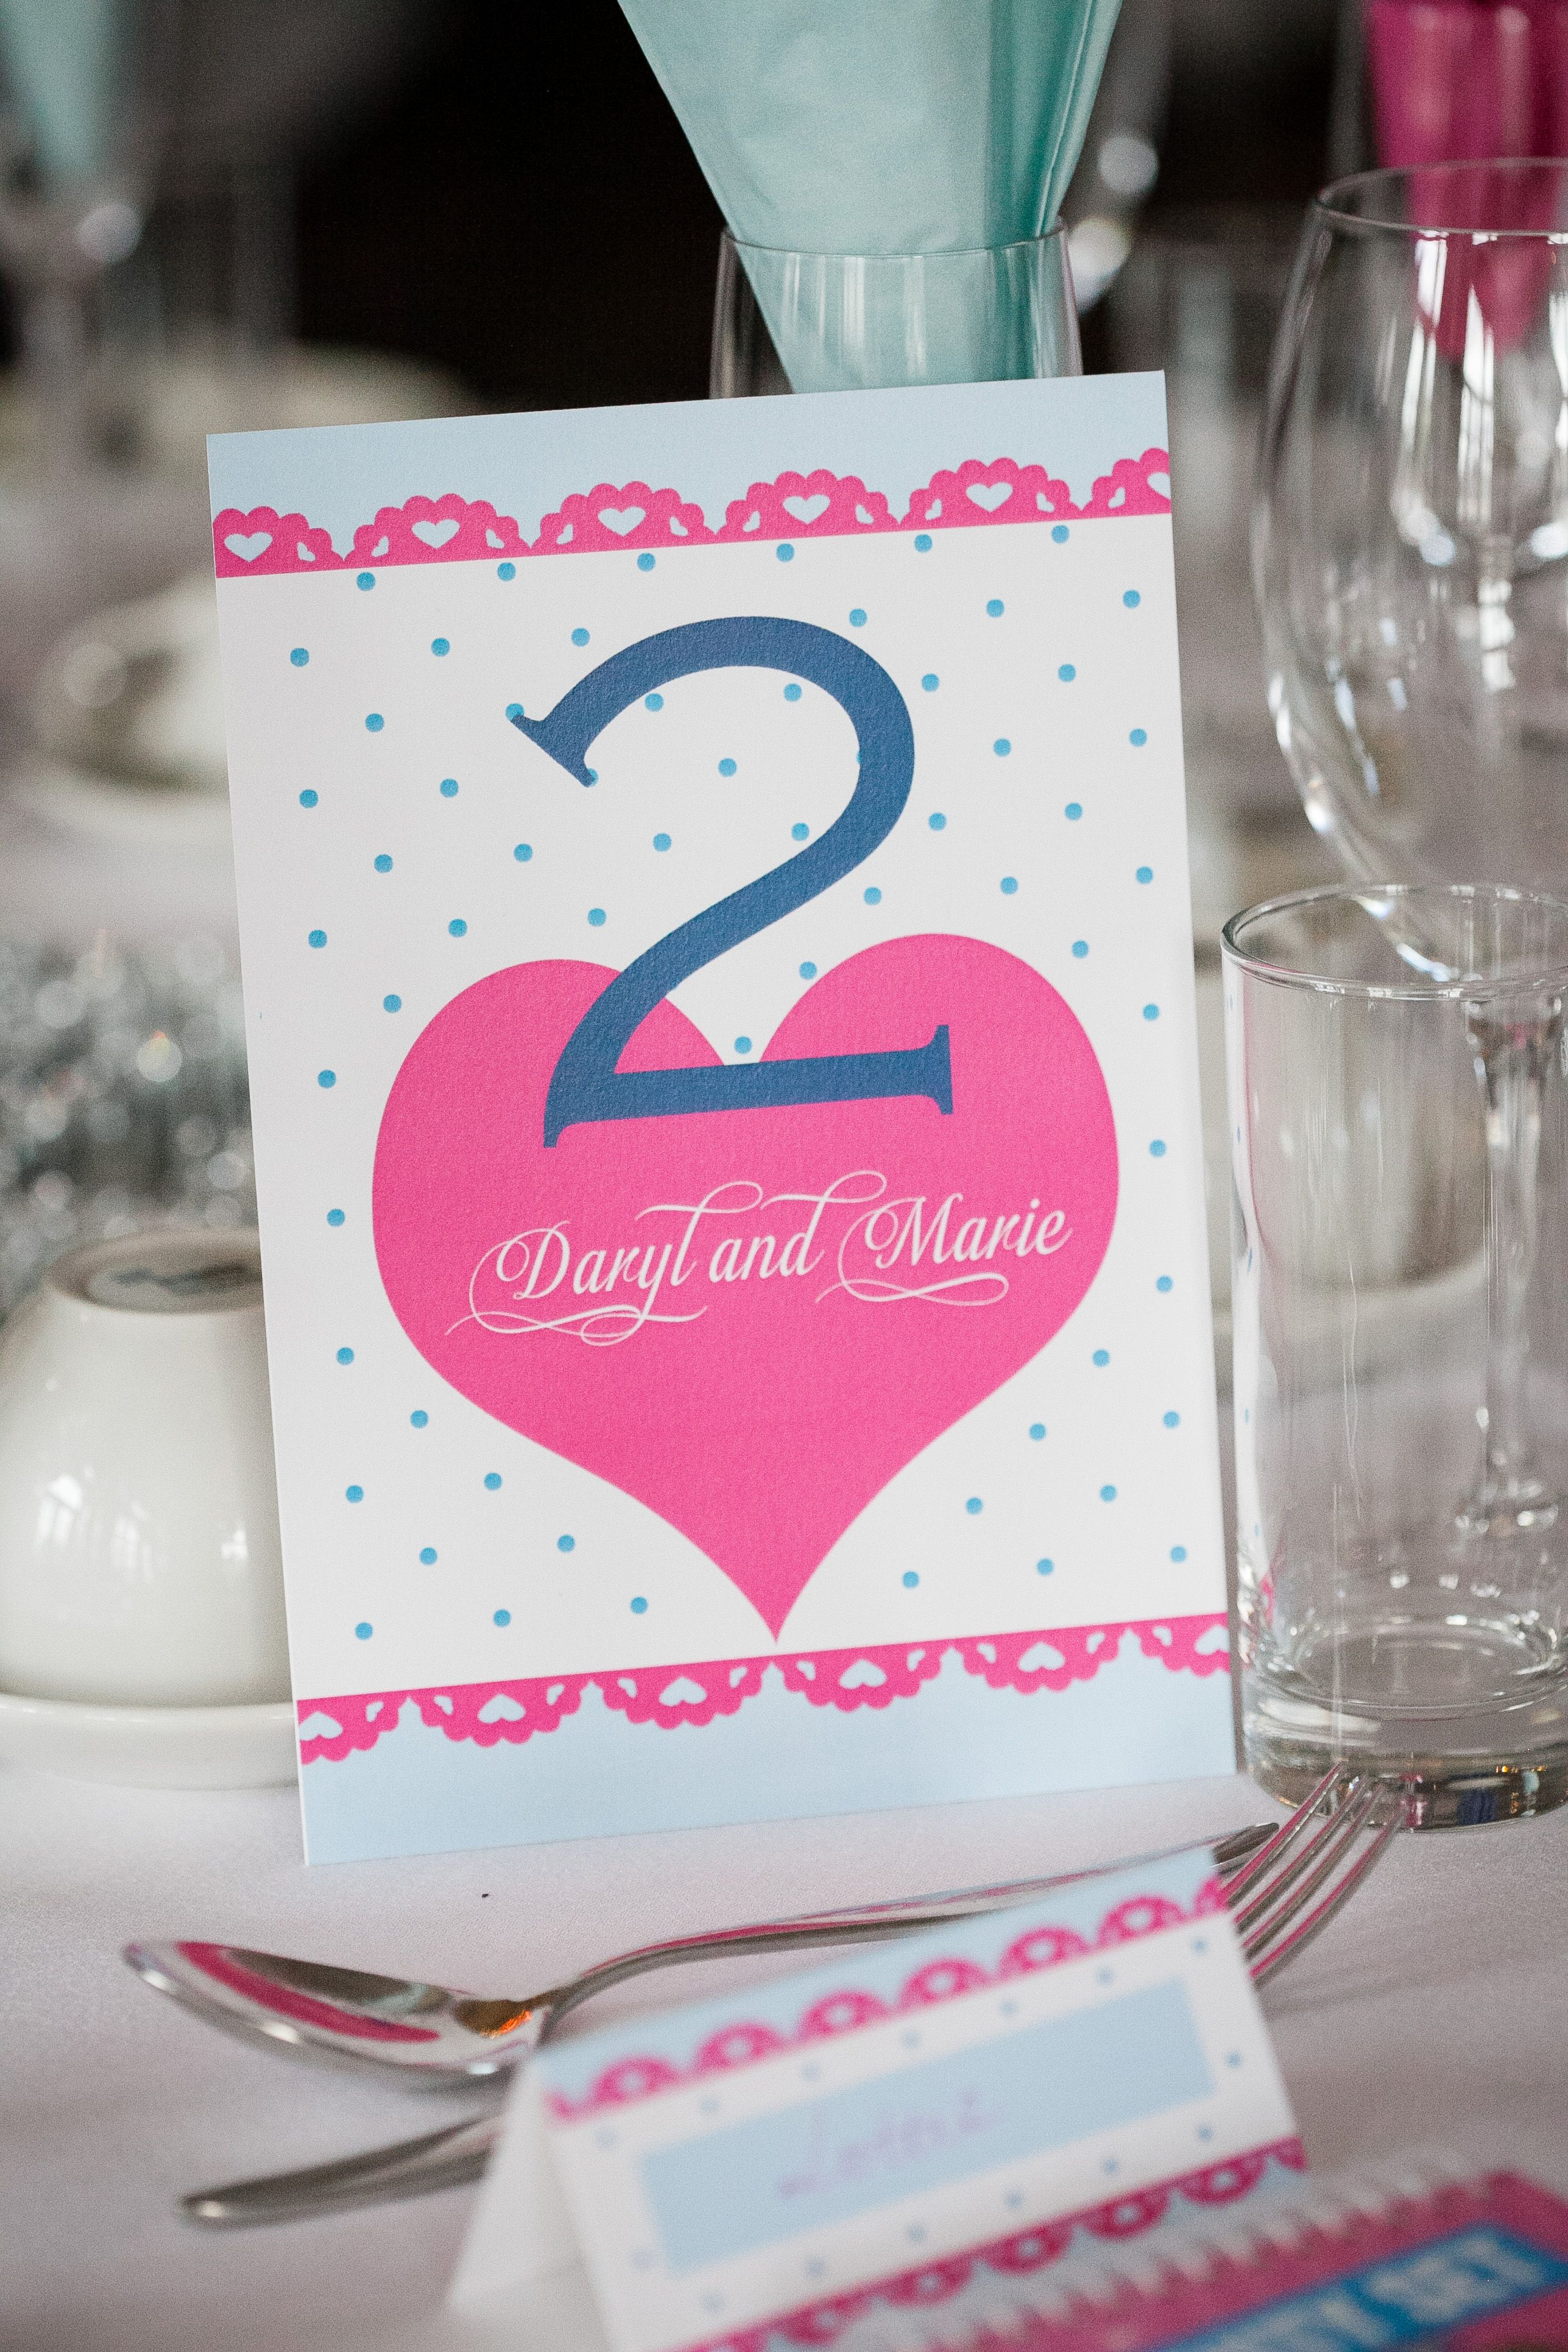 Matilda polka dot and heart vintage table number and place card ...